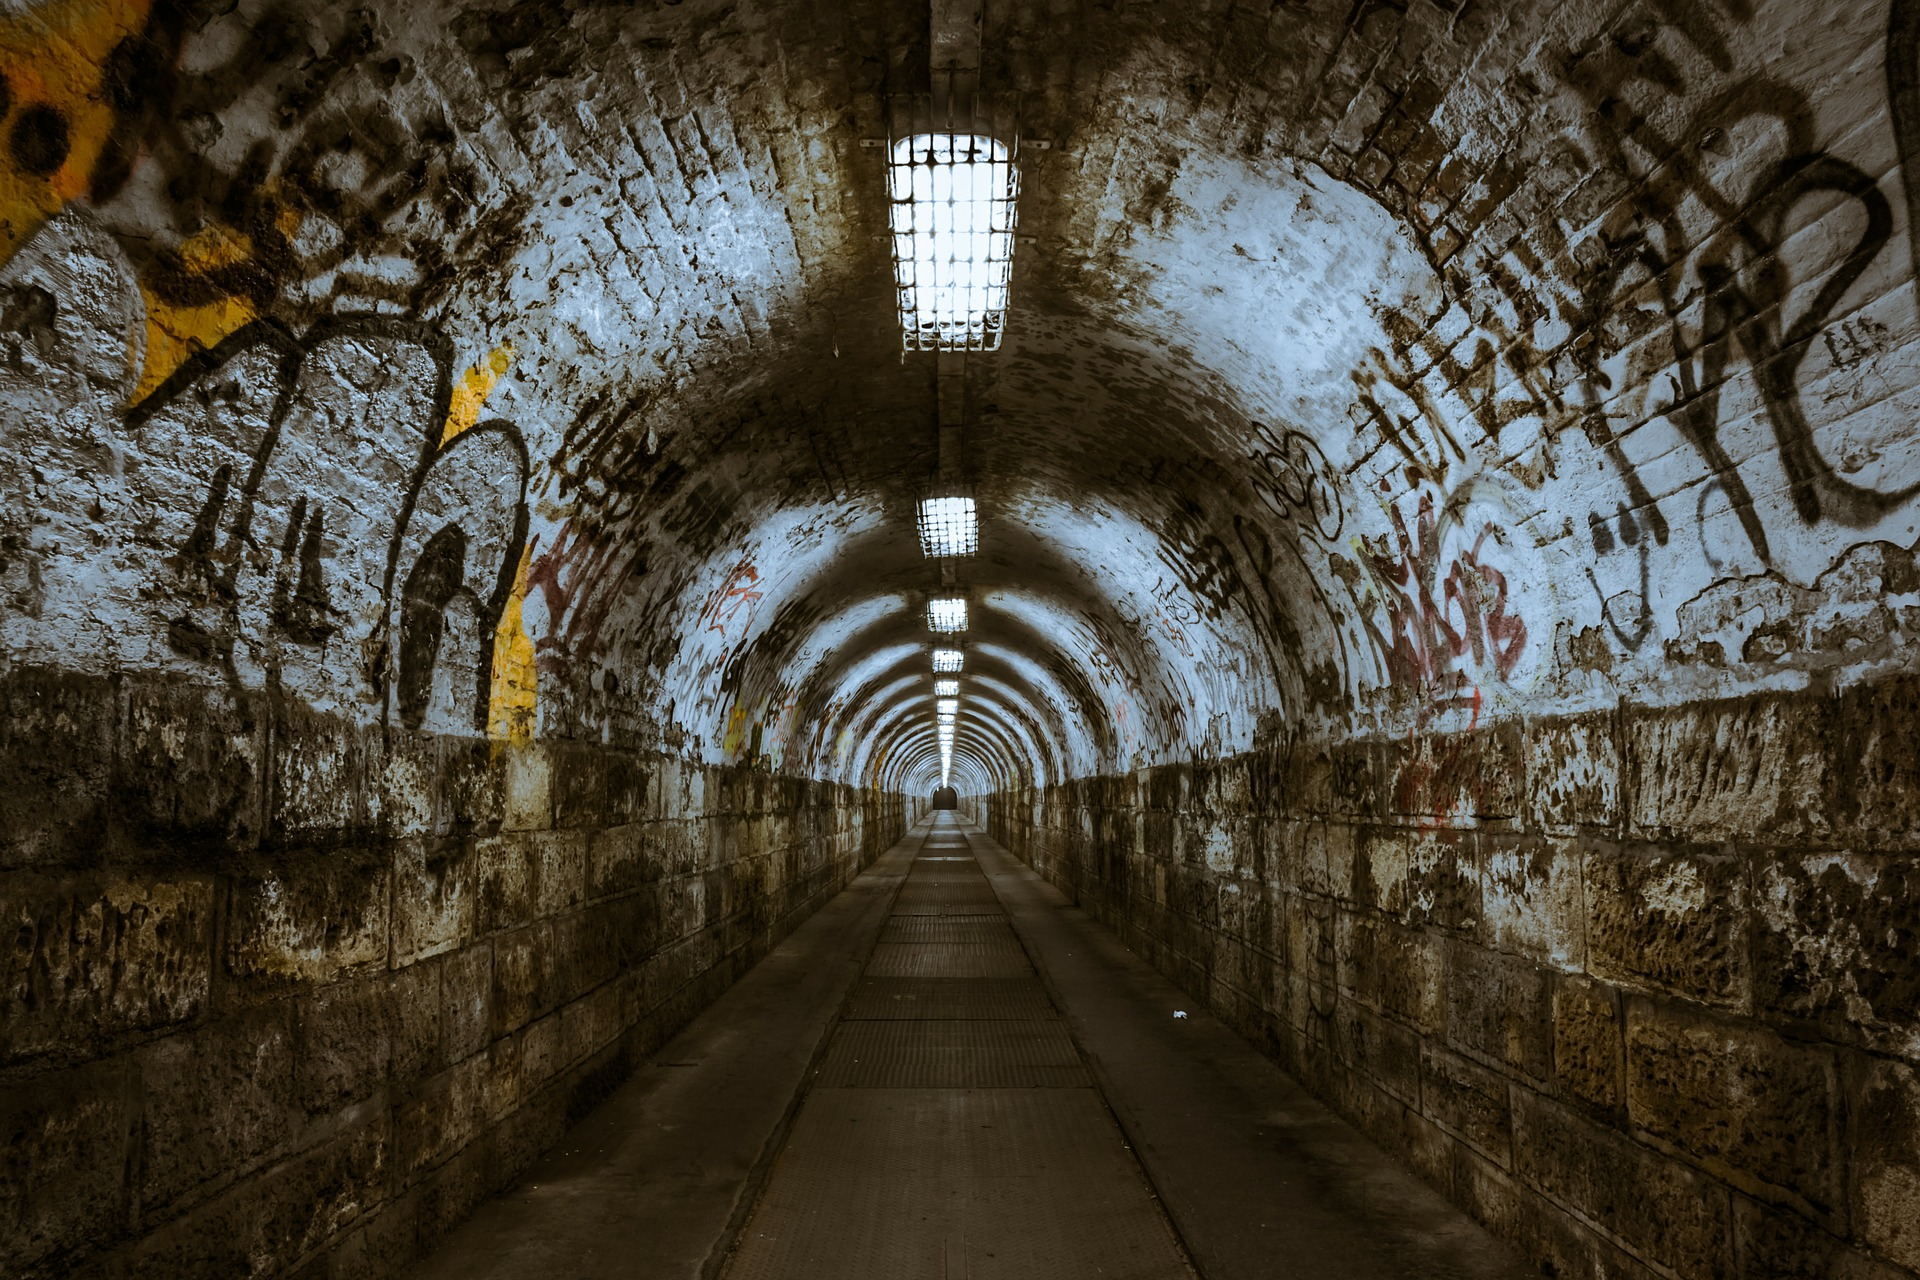 MORE LIGHT AT THE END OF THE TUNNEL By: Steve Woolrich, Principal of Rethink Urban Inc.